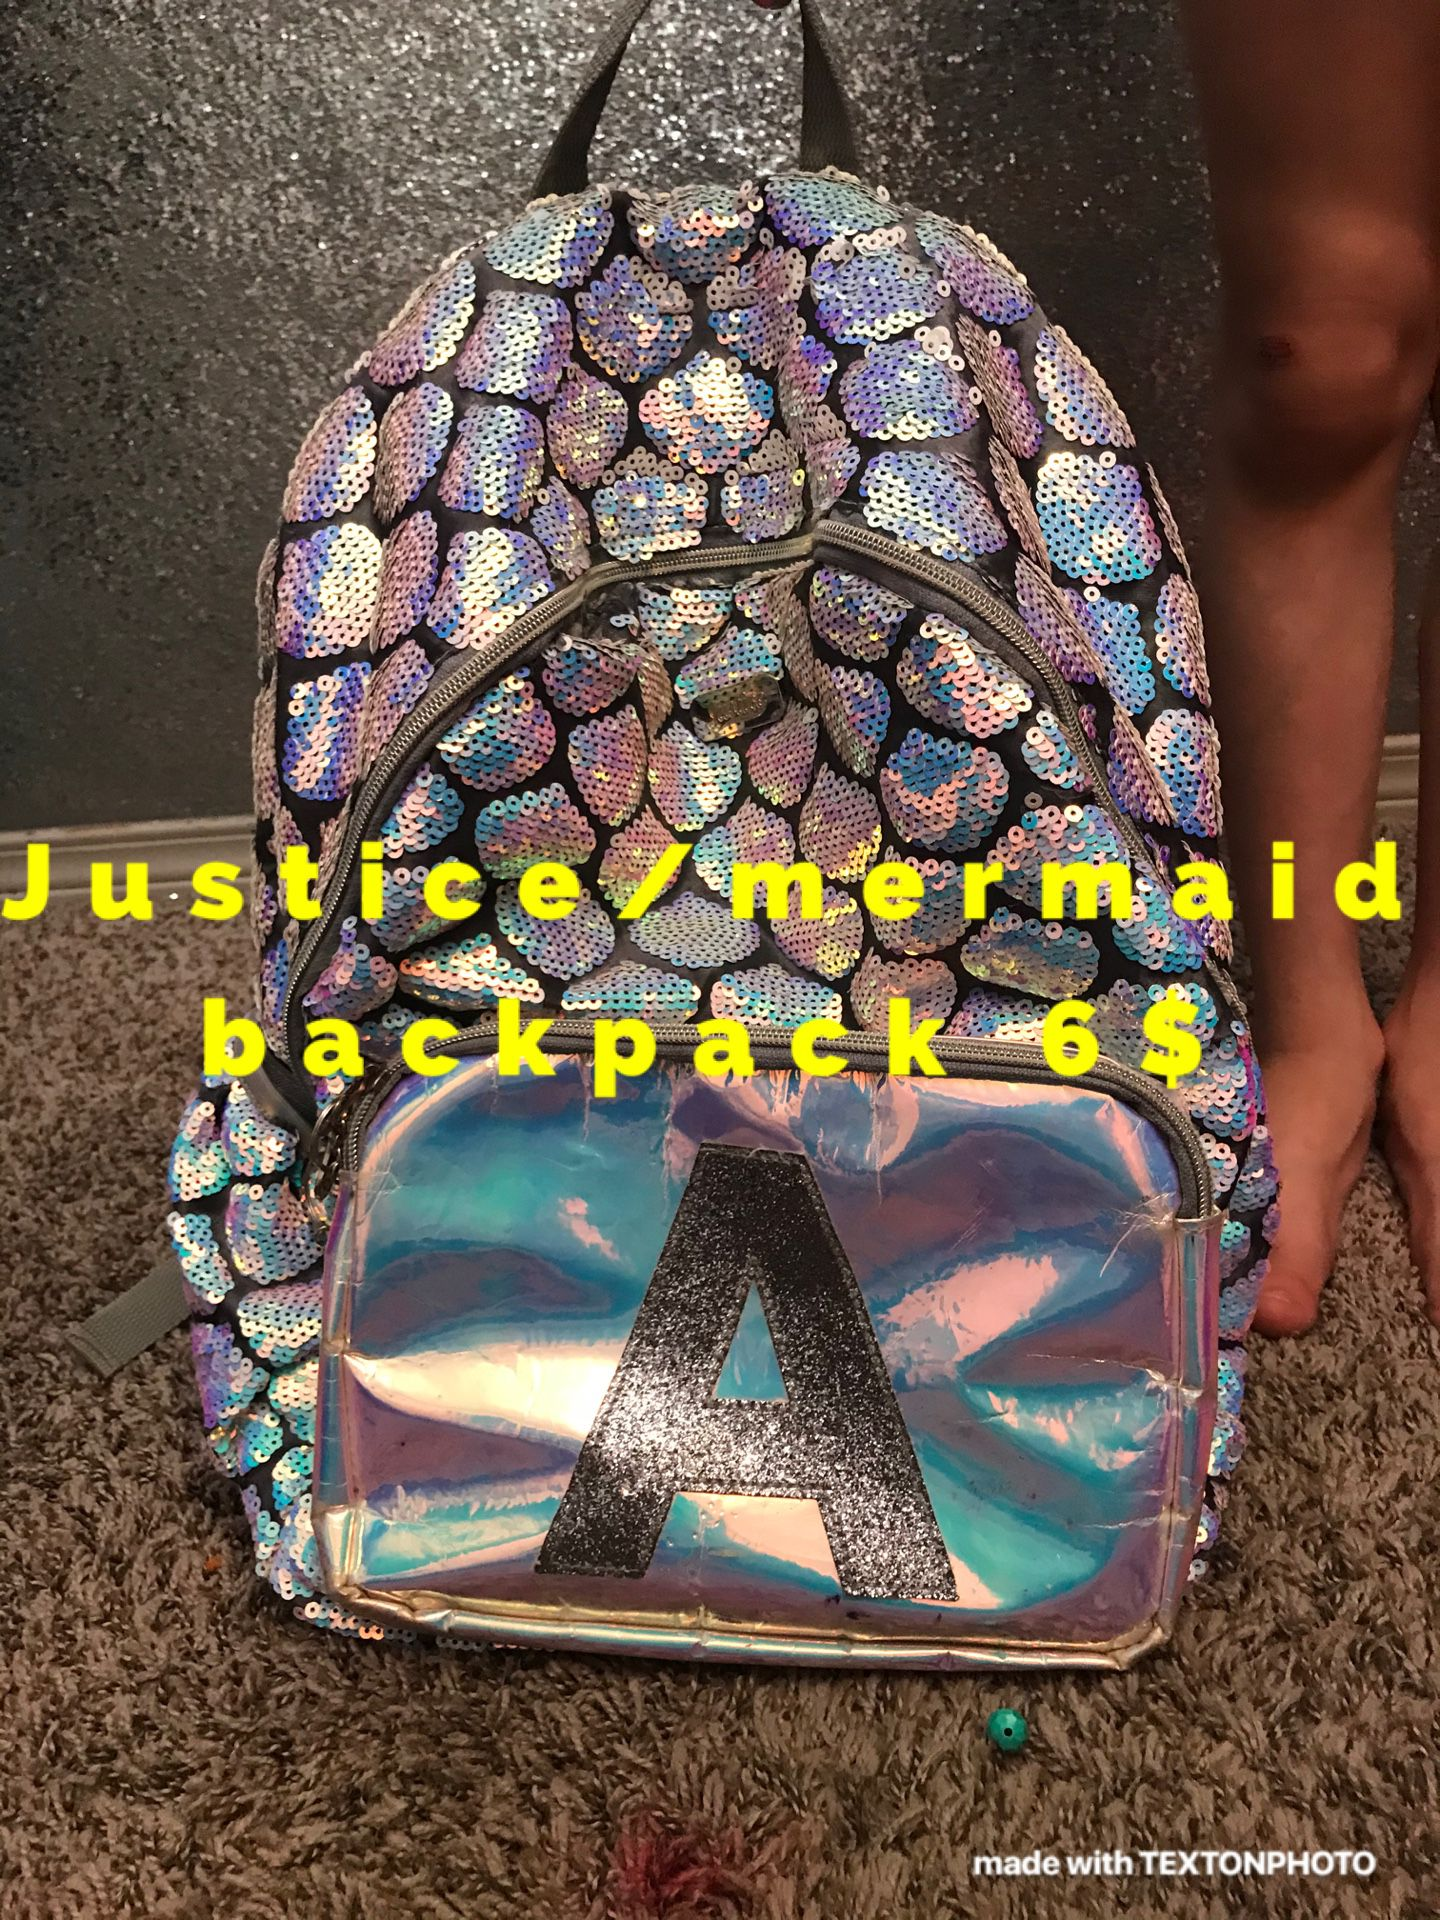 Clothes and backpacks everything has its price on the picture or if you want everything 35